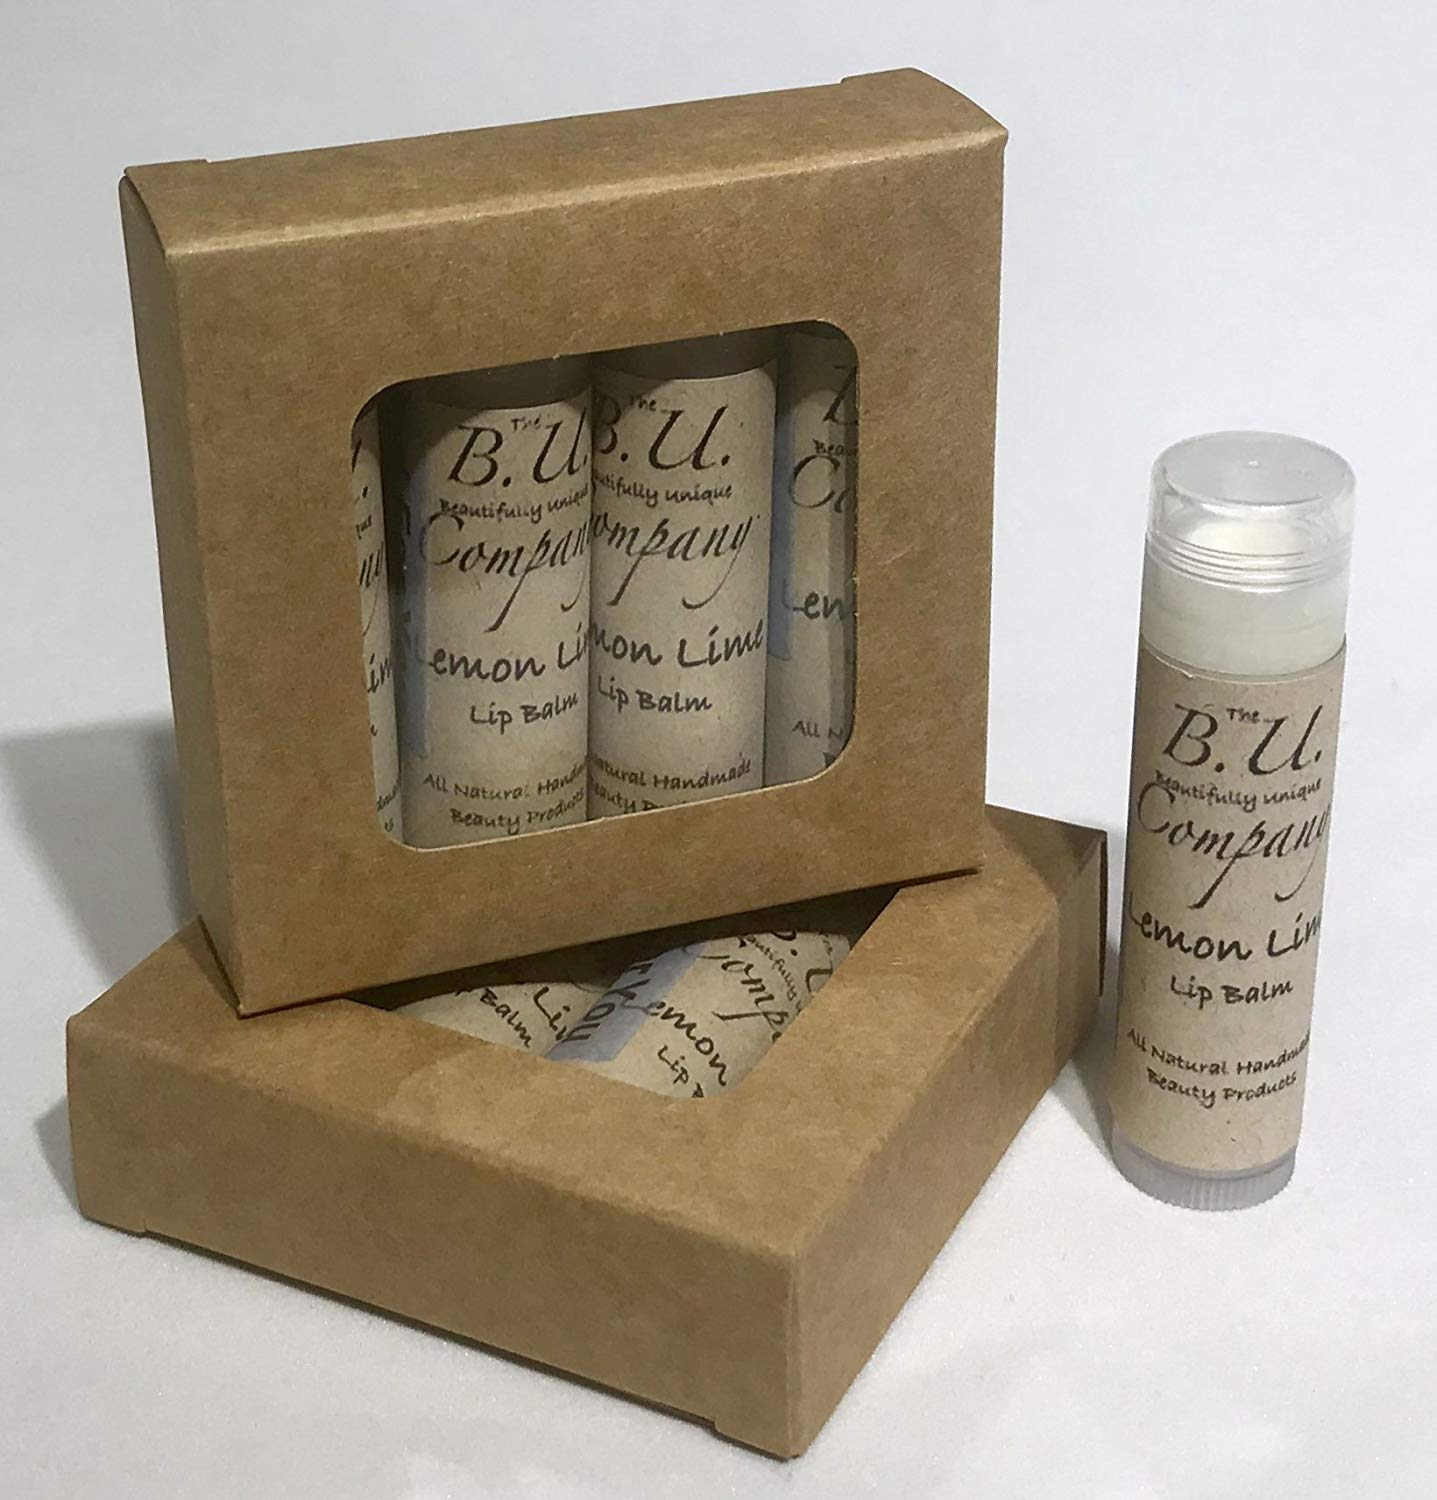 All Natural Lemon Lime Lip Balm - All Natural Handmade - BU Company - 4 pack